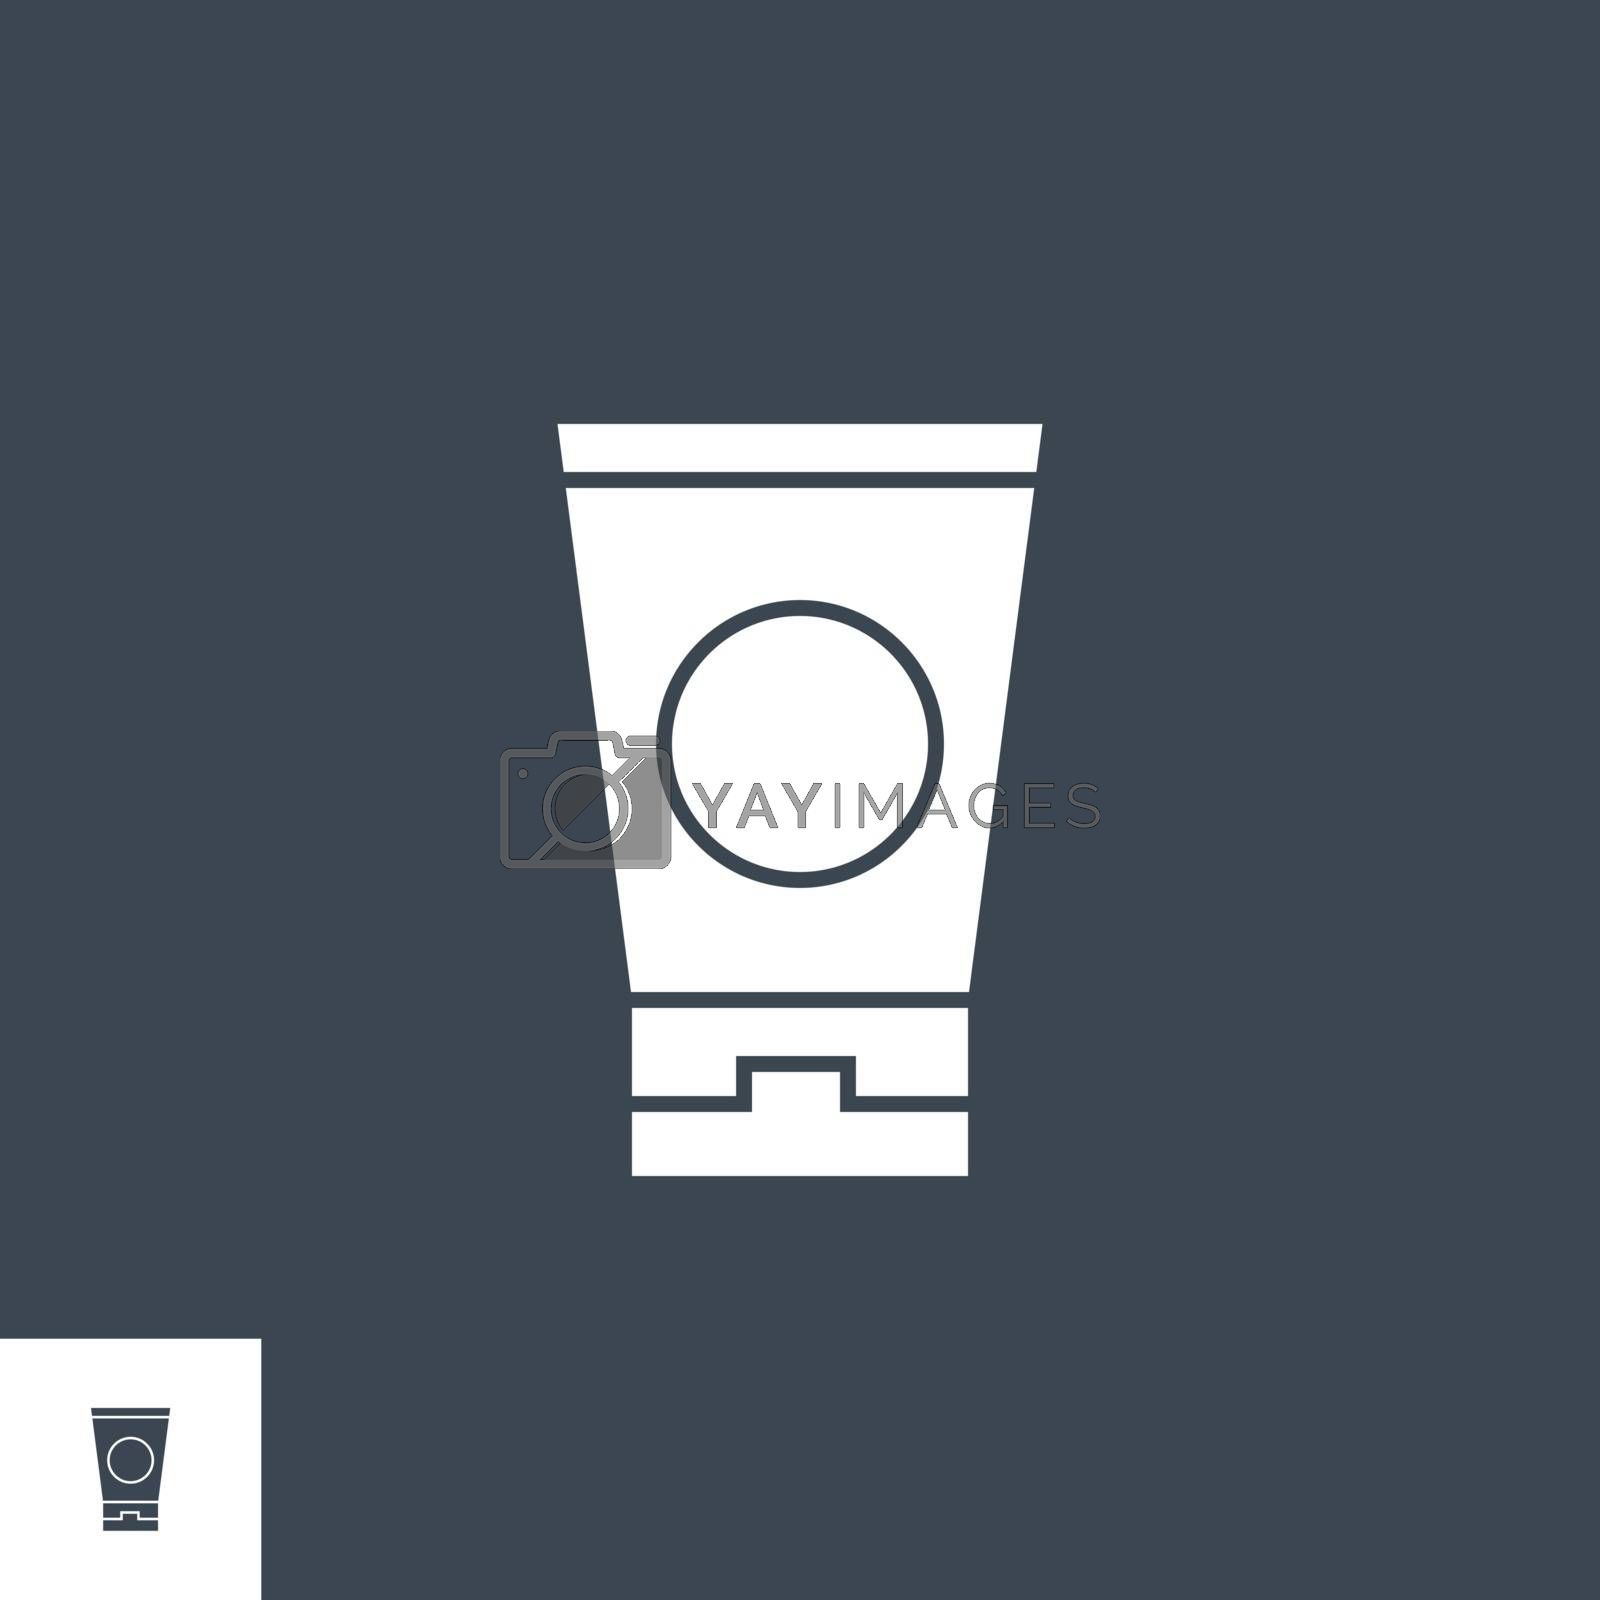 Sunscreen related vector glyph icon. Isolated on black background. Vector illustration.